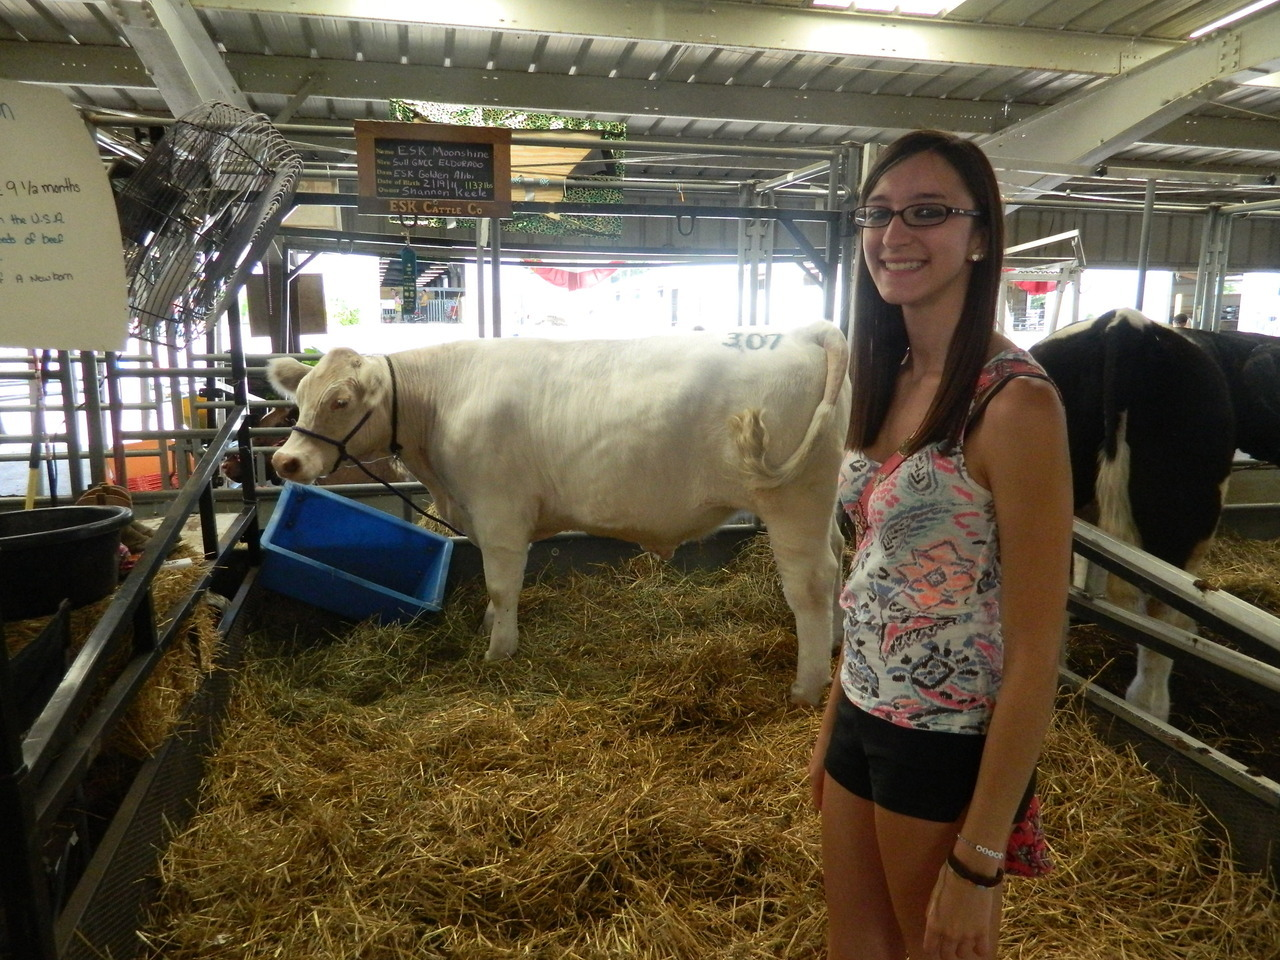 i was in cow heaven at the fair c: